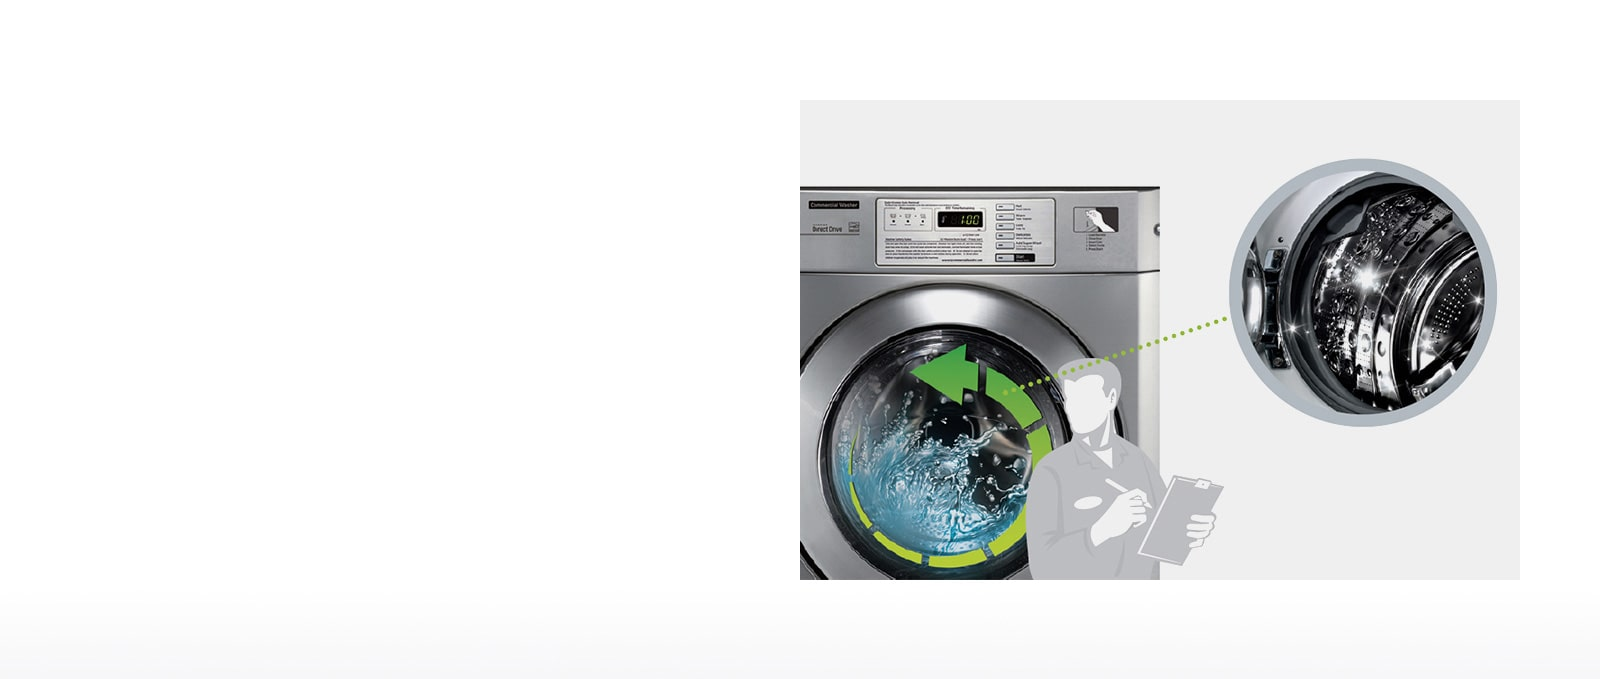 Giant C Products Commercial Laundry Business Lg Global Wiring A Hot Tub In The Uk Cleaning System